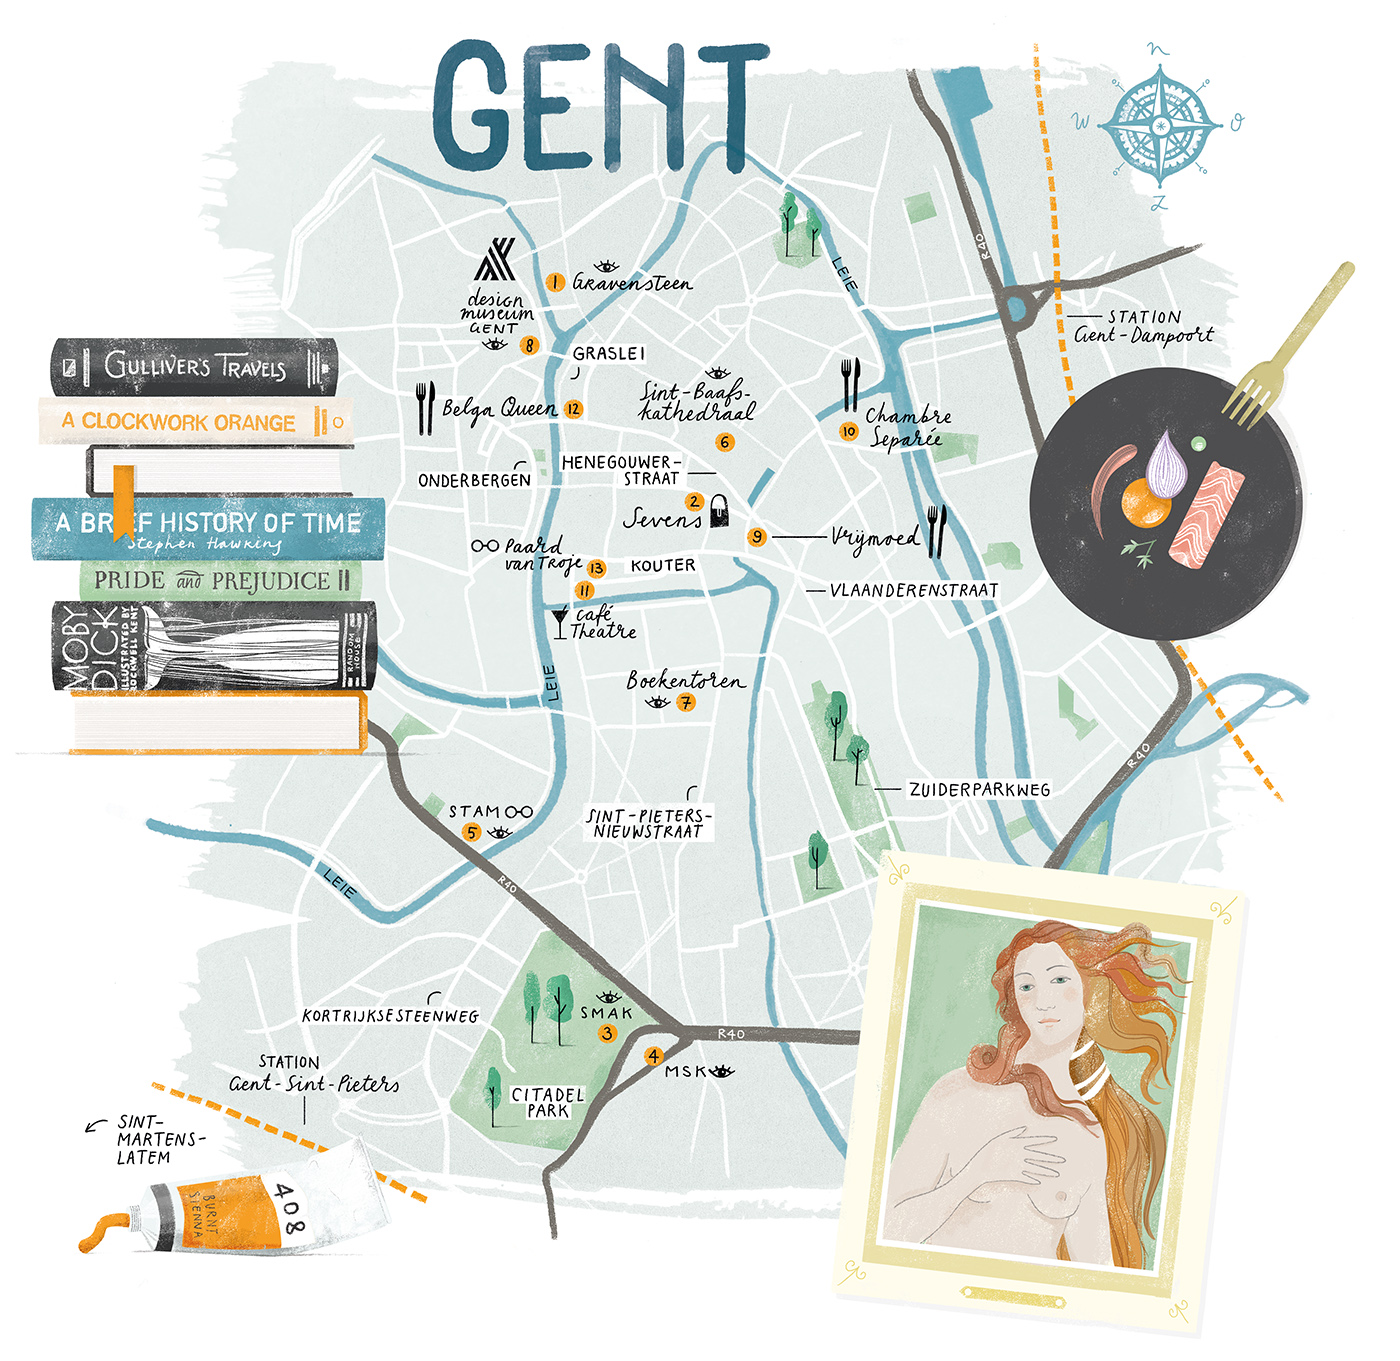 The map of Gent I made for FD Persoonlijk